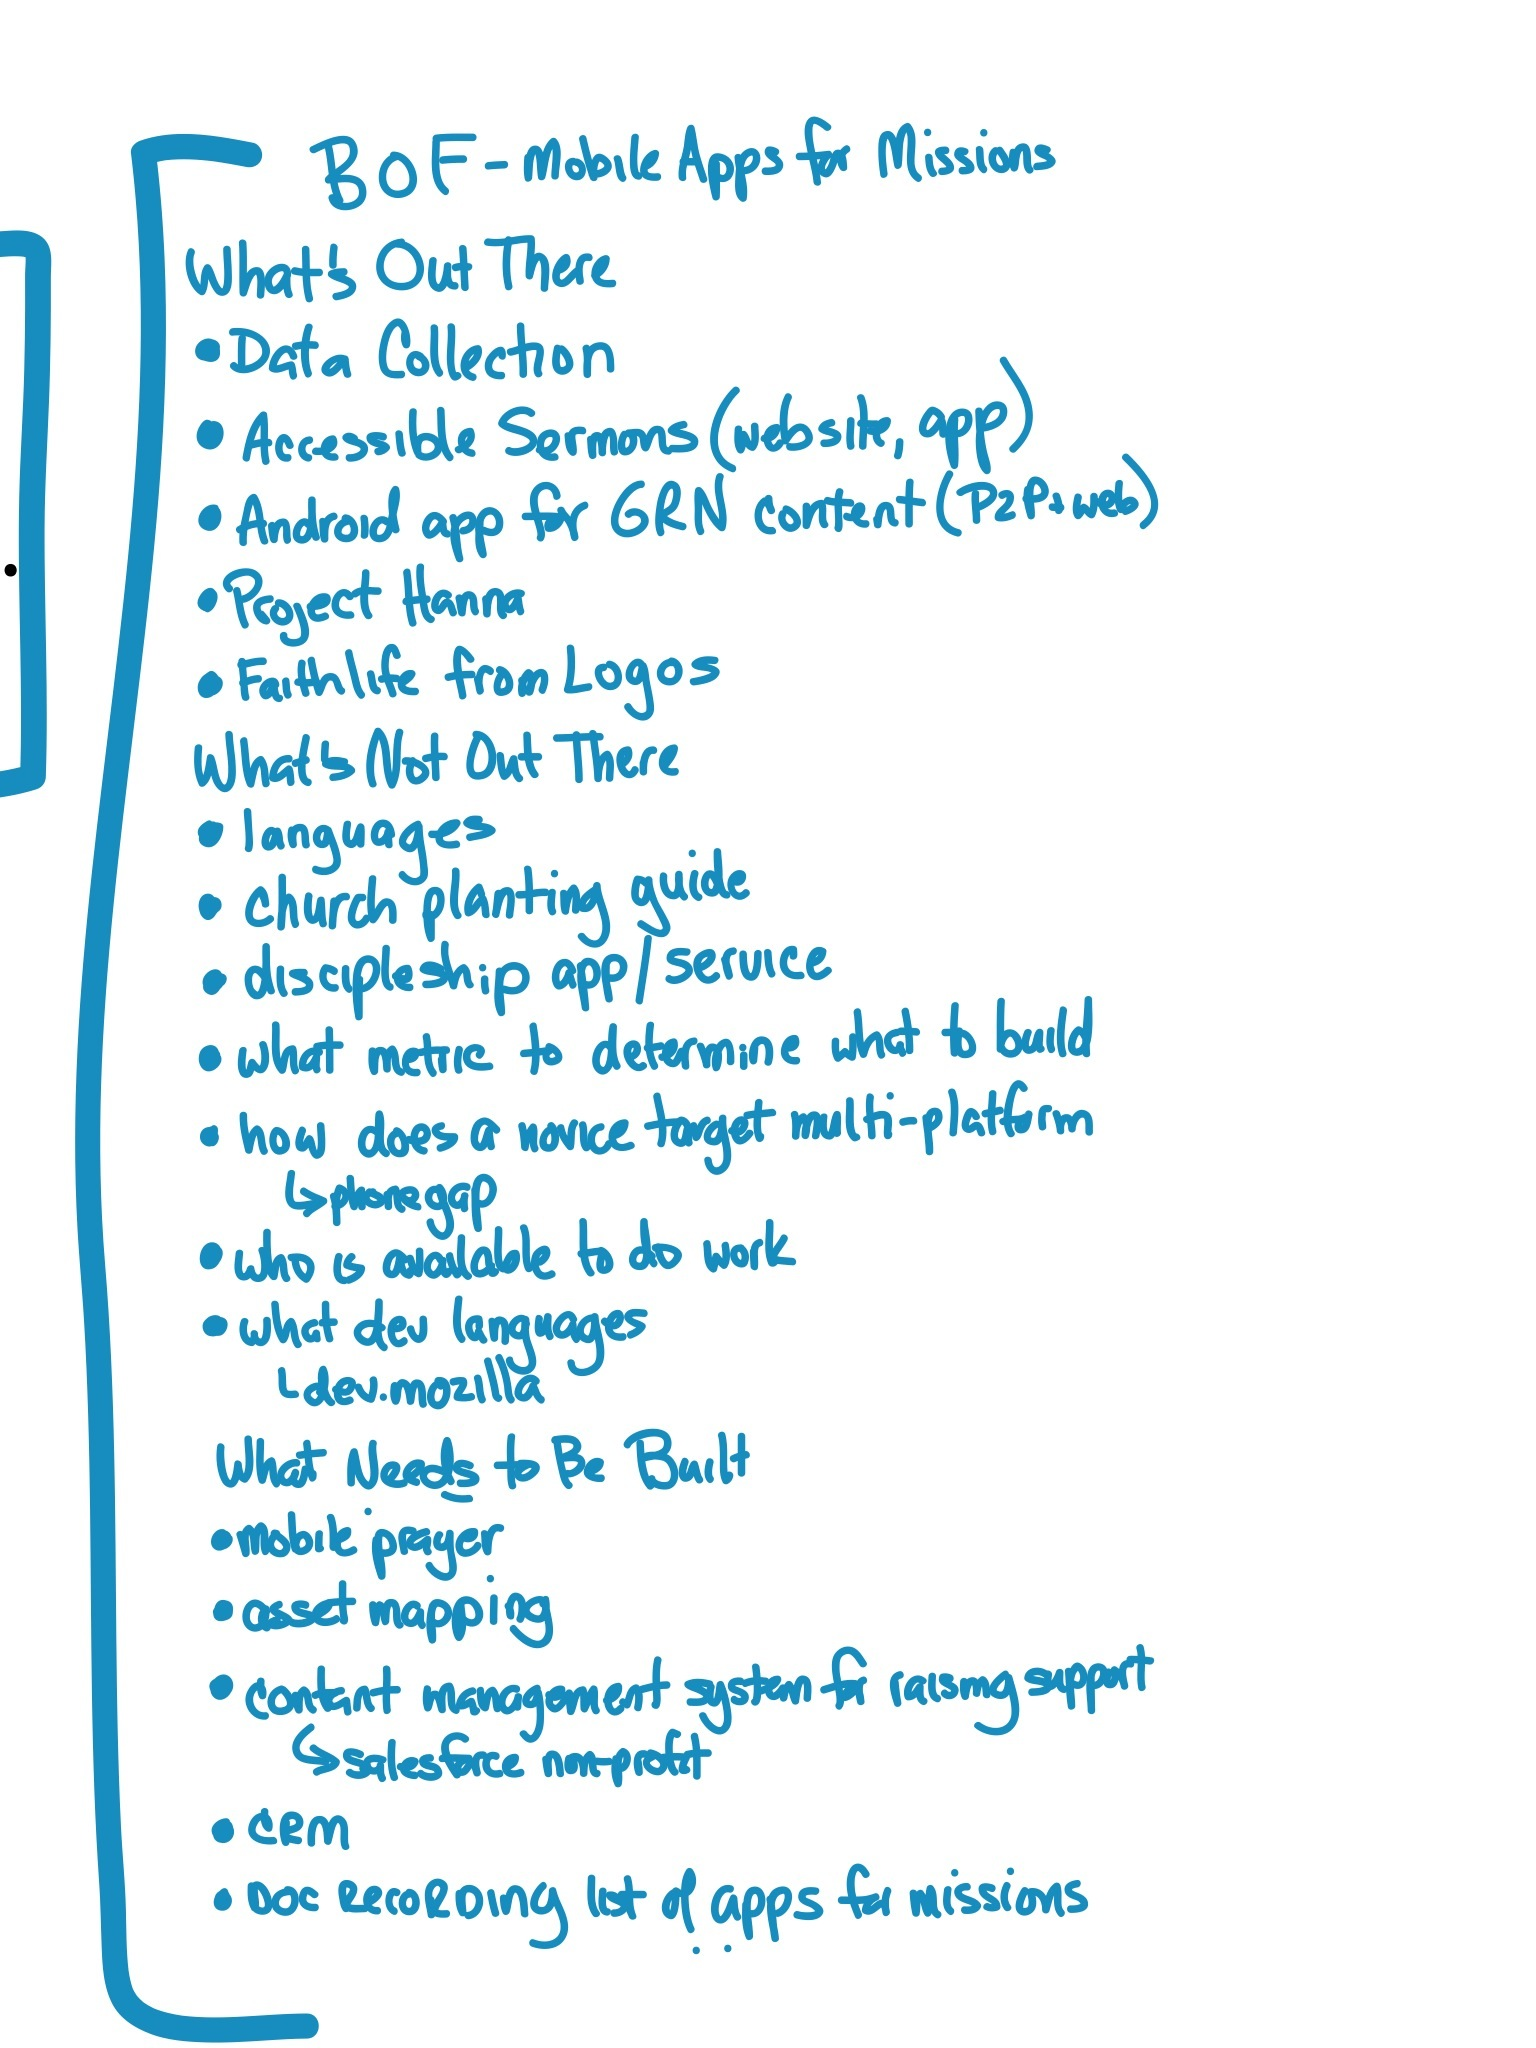 ICCM BOF Mobile Apps for Missions Sketchnote